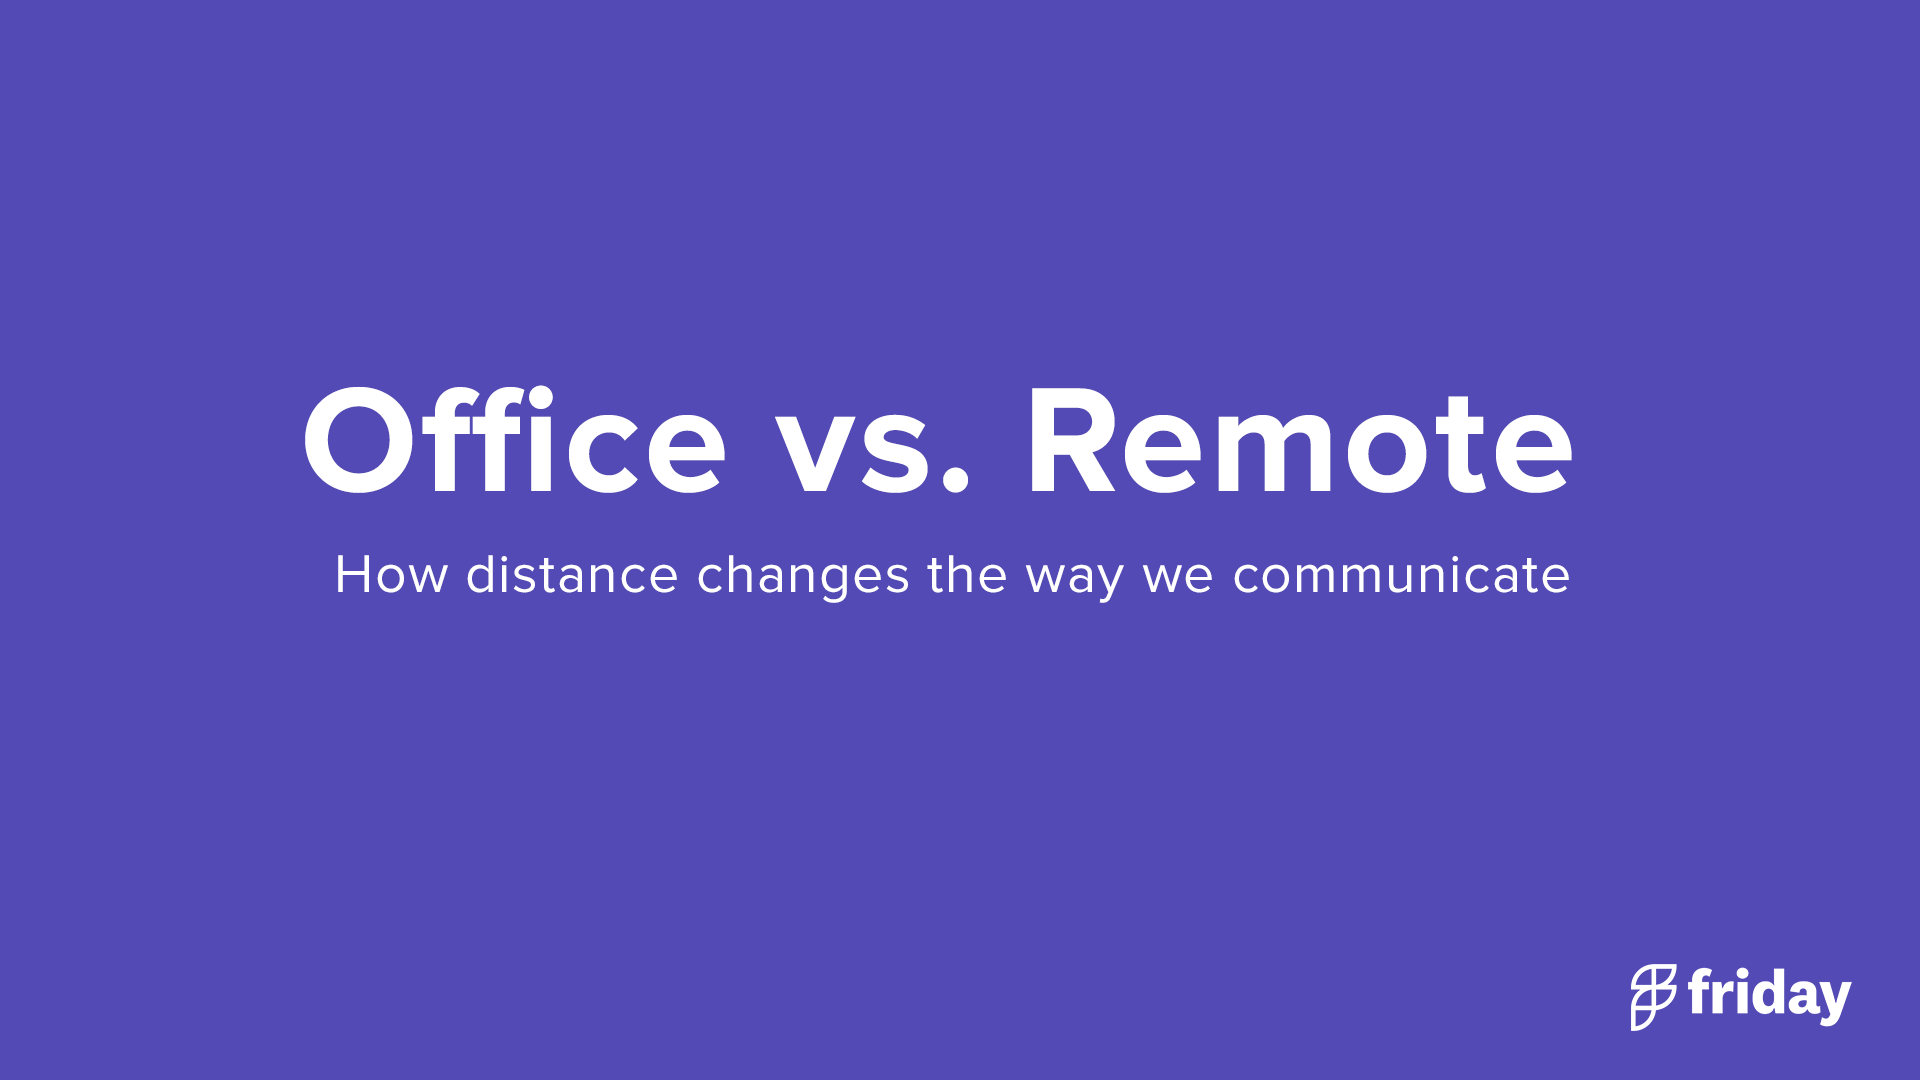 Remote vs. Office